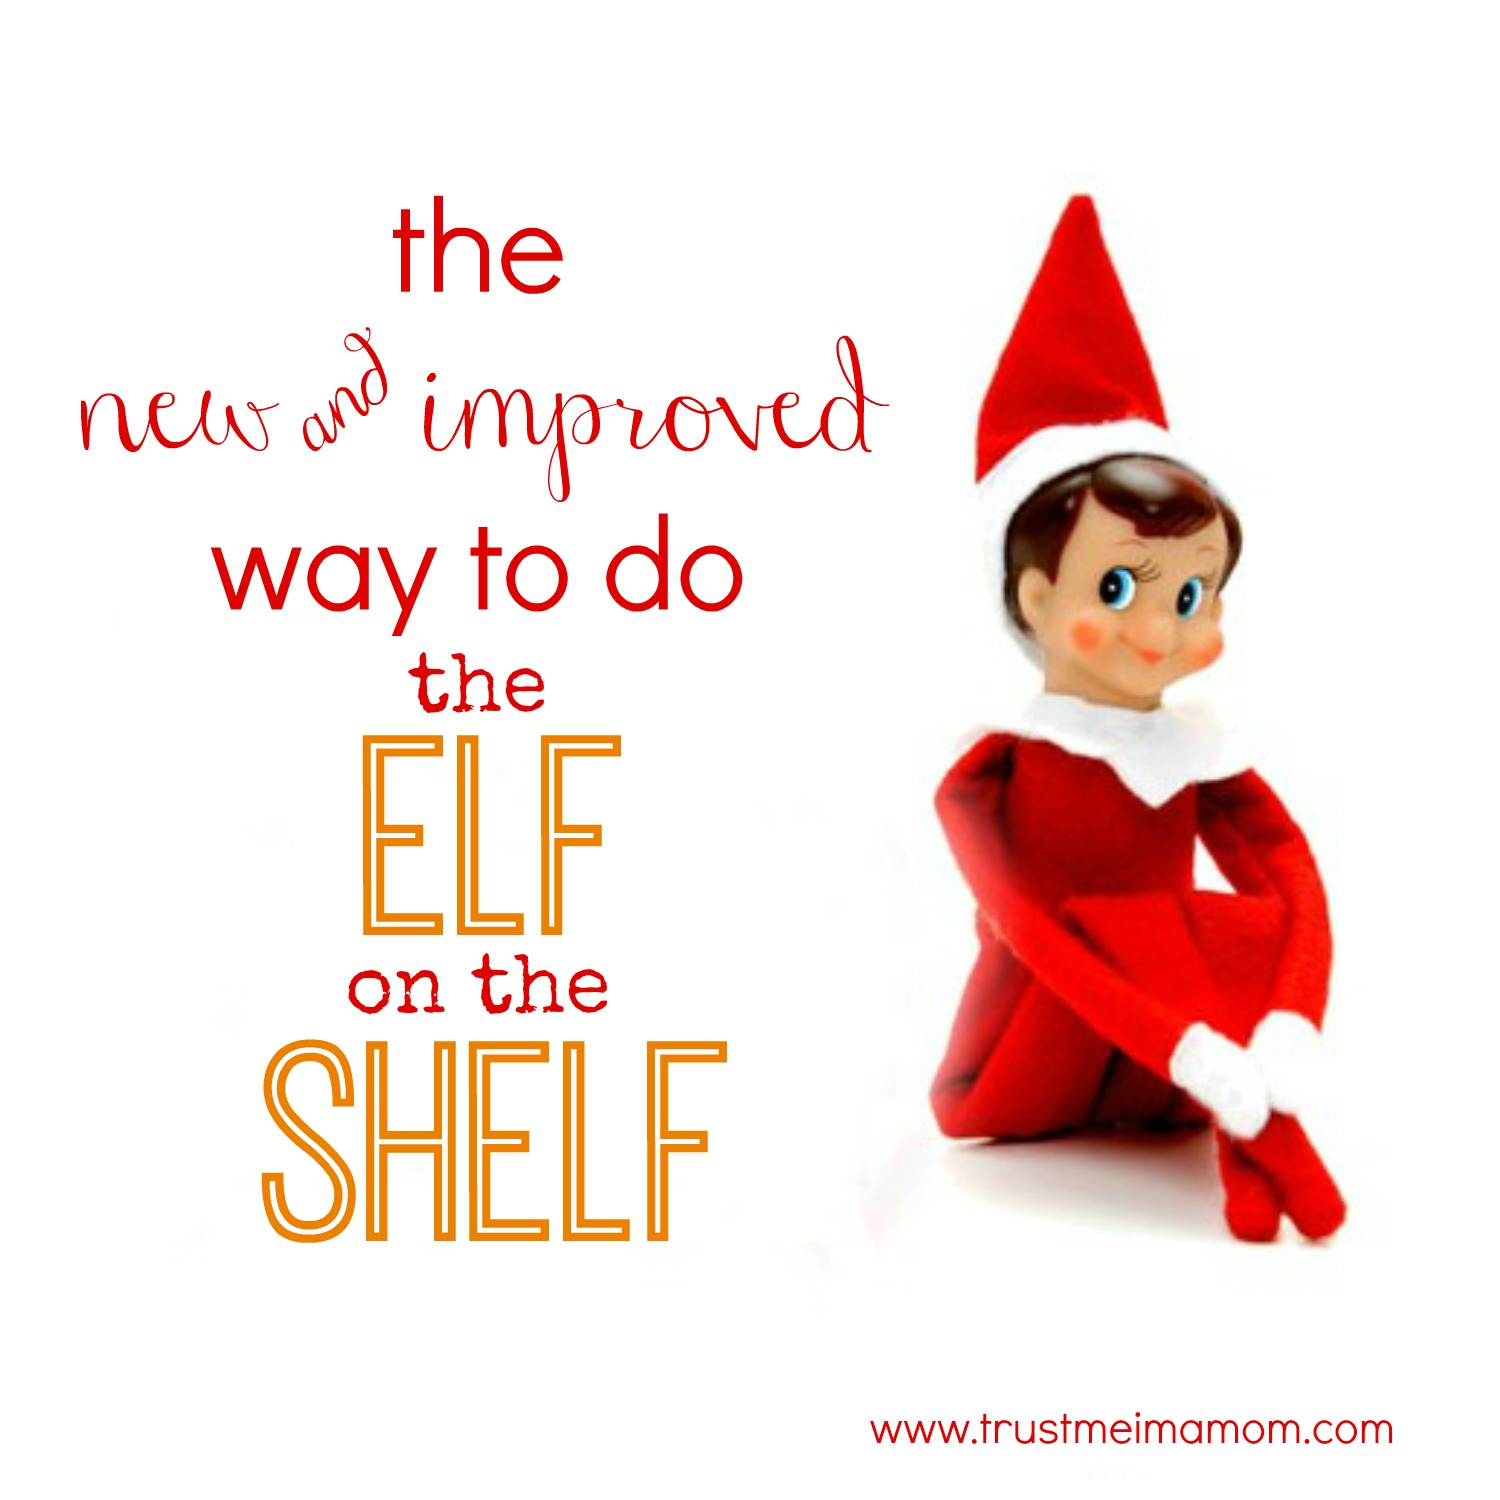 Trust Me I M A Mom The Elf On The Shelf Reinvented